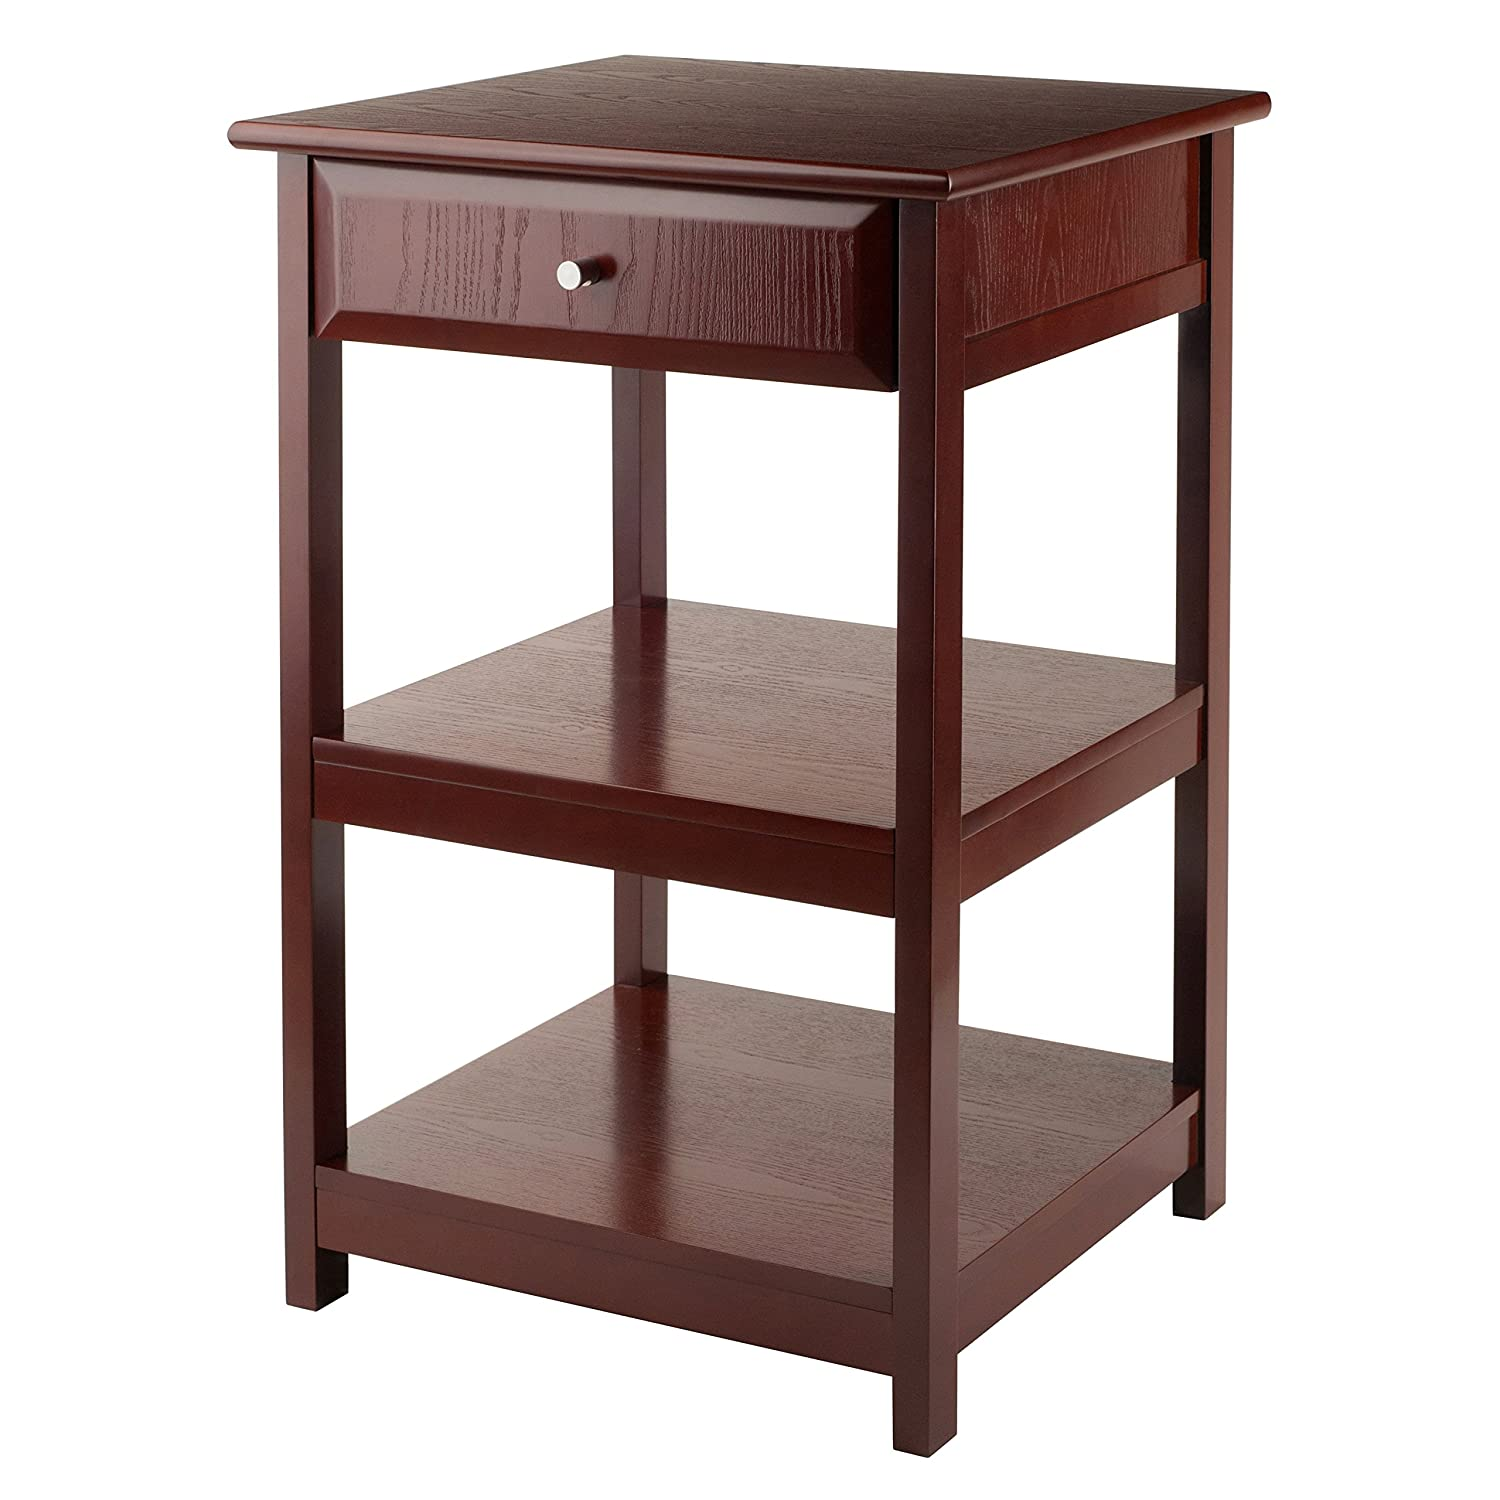 Winsome Wood Delta Printer Table, Walnut Luxury Home 94121-WW